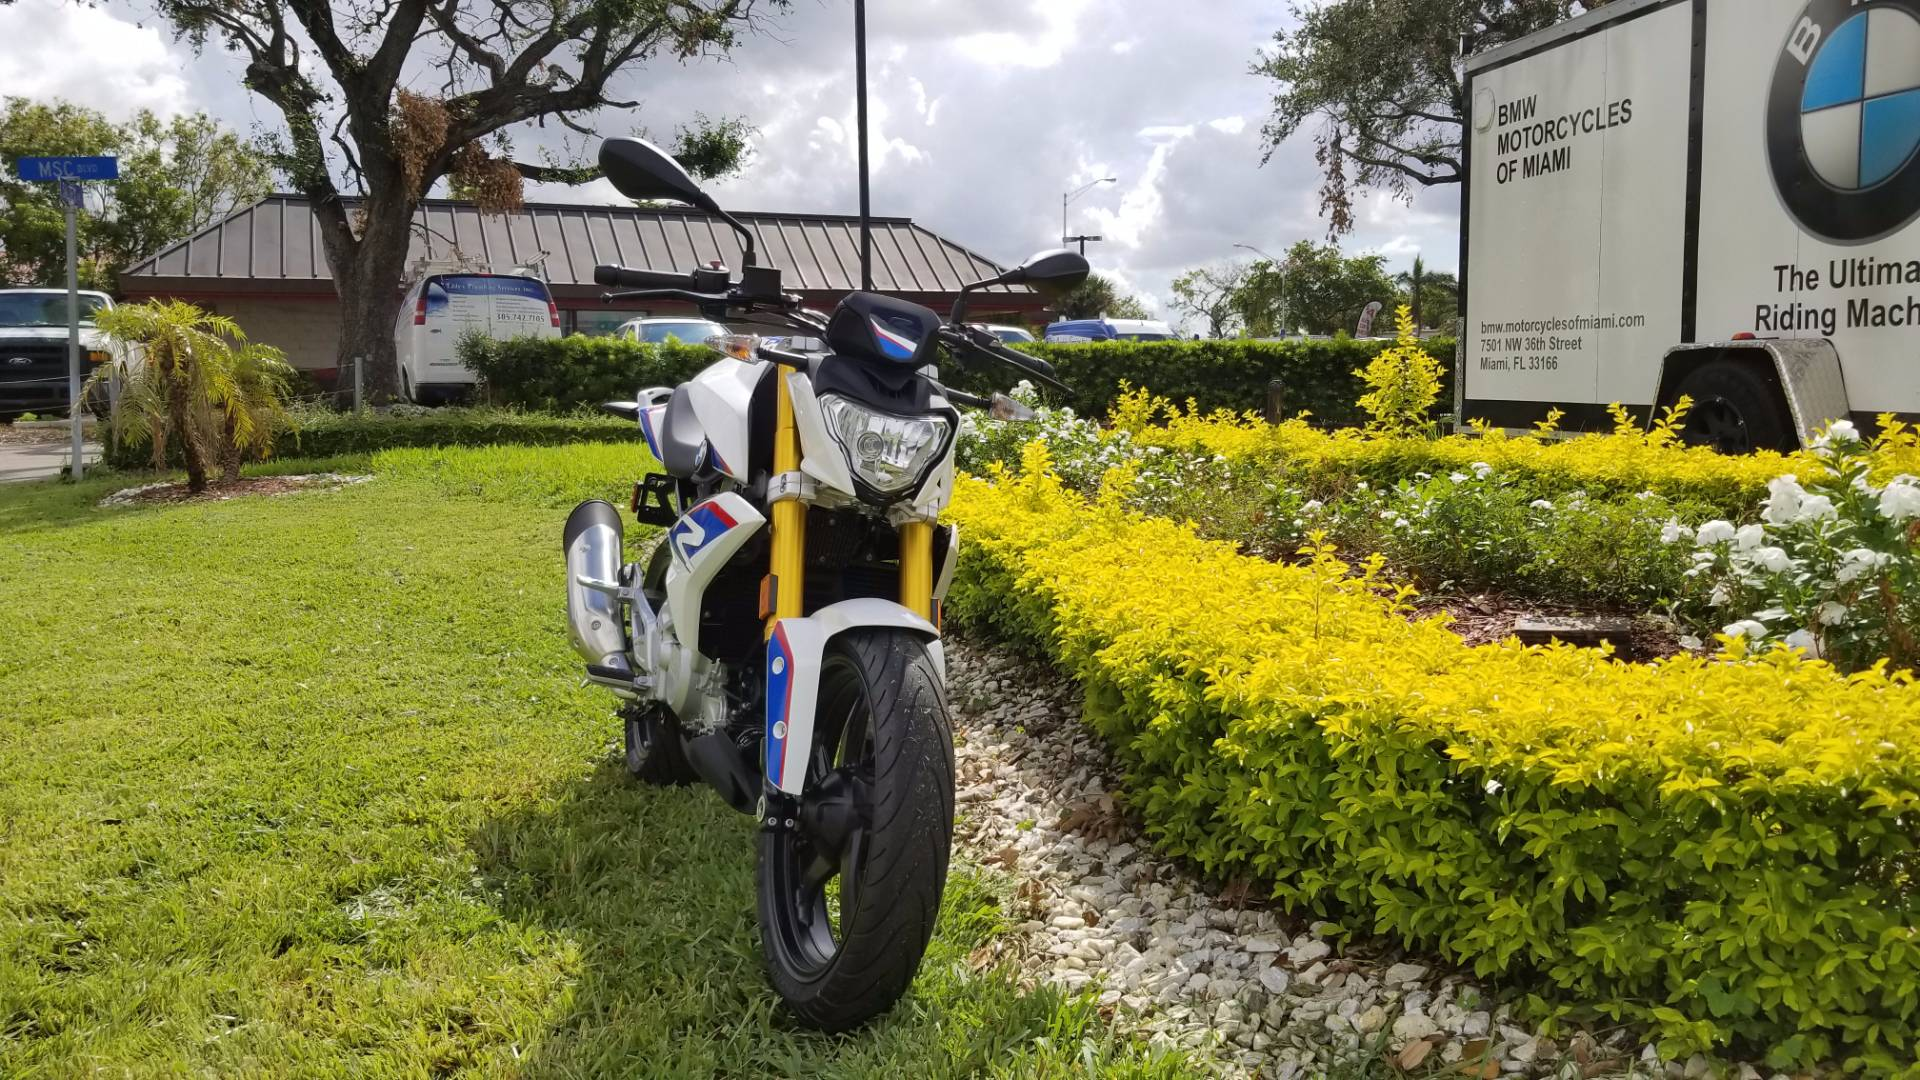 New 2018 BMW G 310 R Motorcycles in Miami, FL